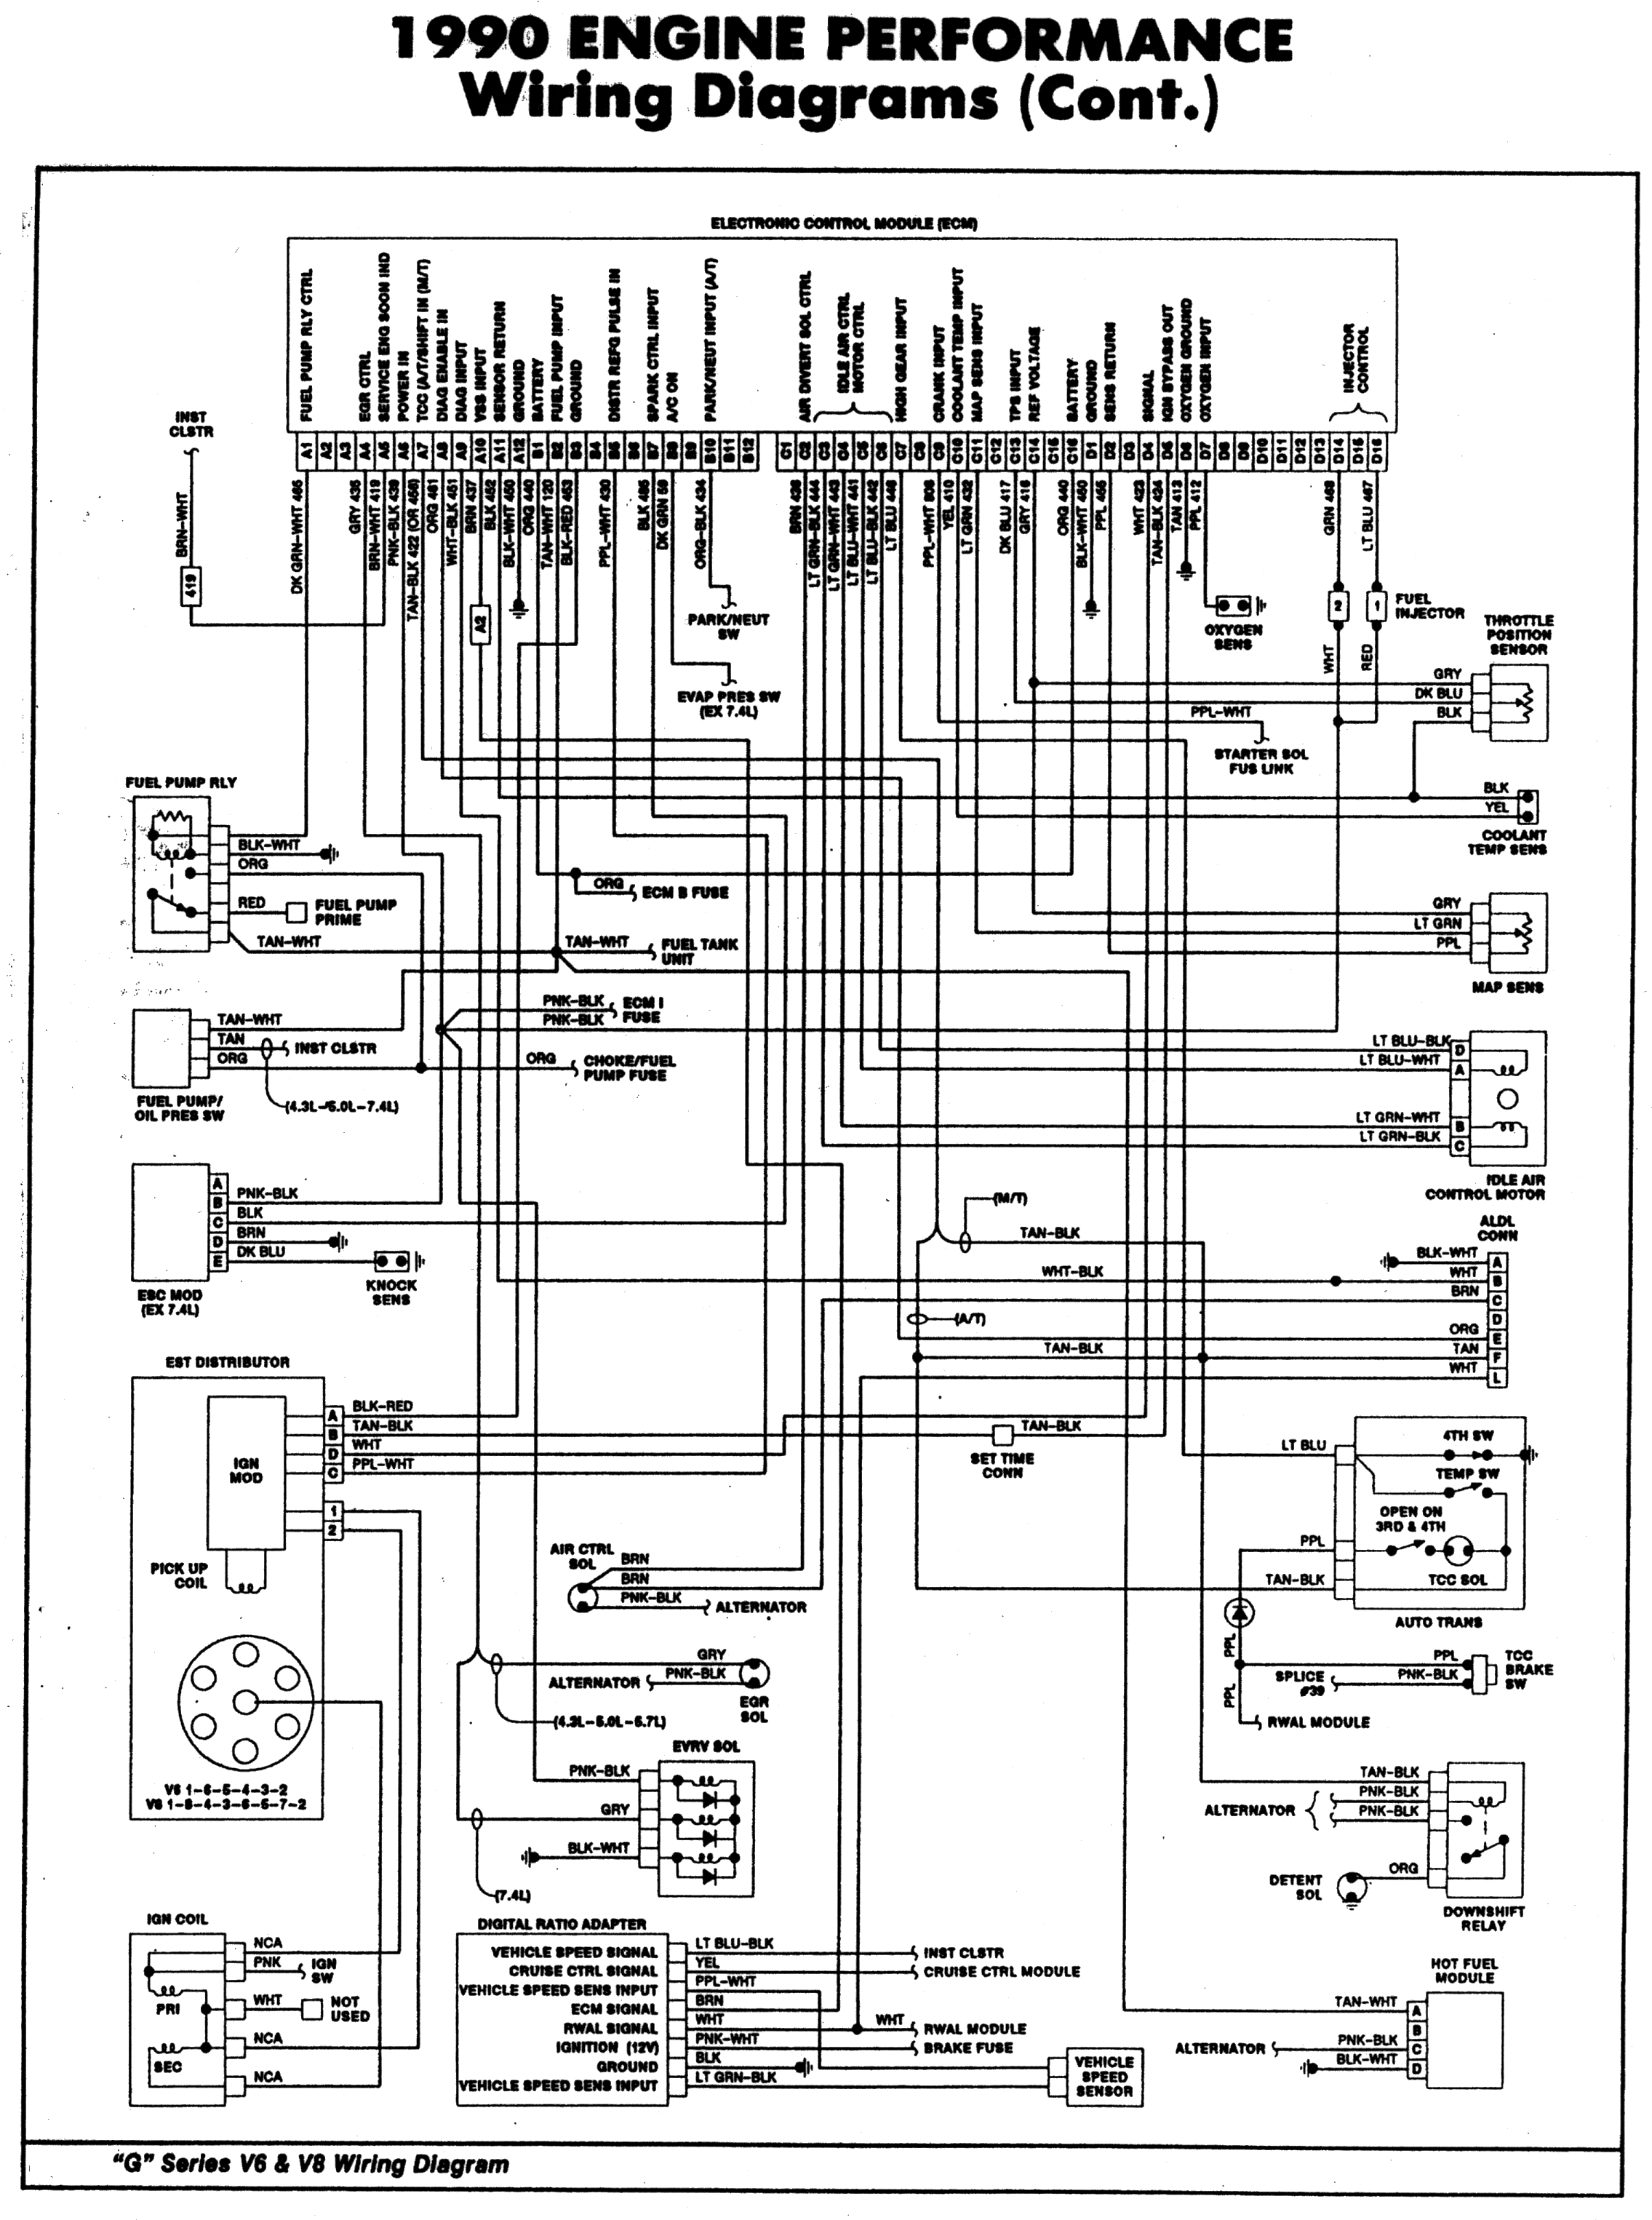 90 Chevy Truck Wiring Diagram - Wiring Diagram Explained - 1990 Chevy 1500 Fuel Pump Wiring Diagram